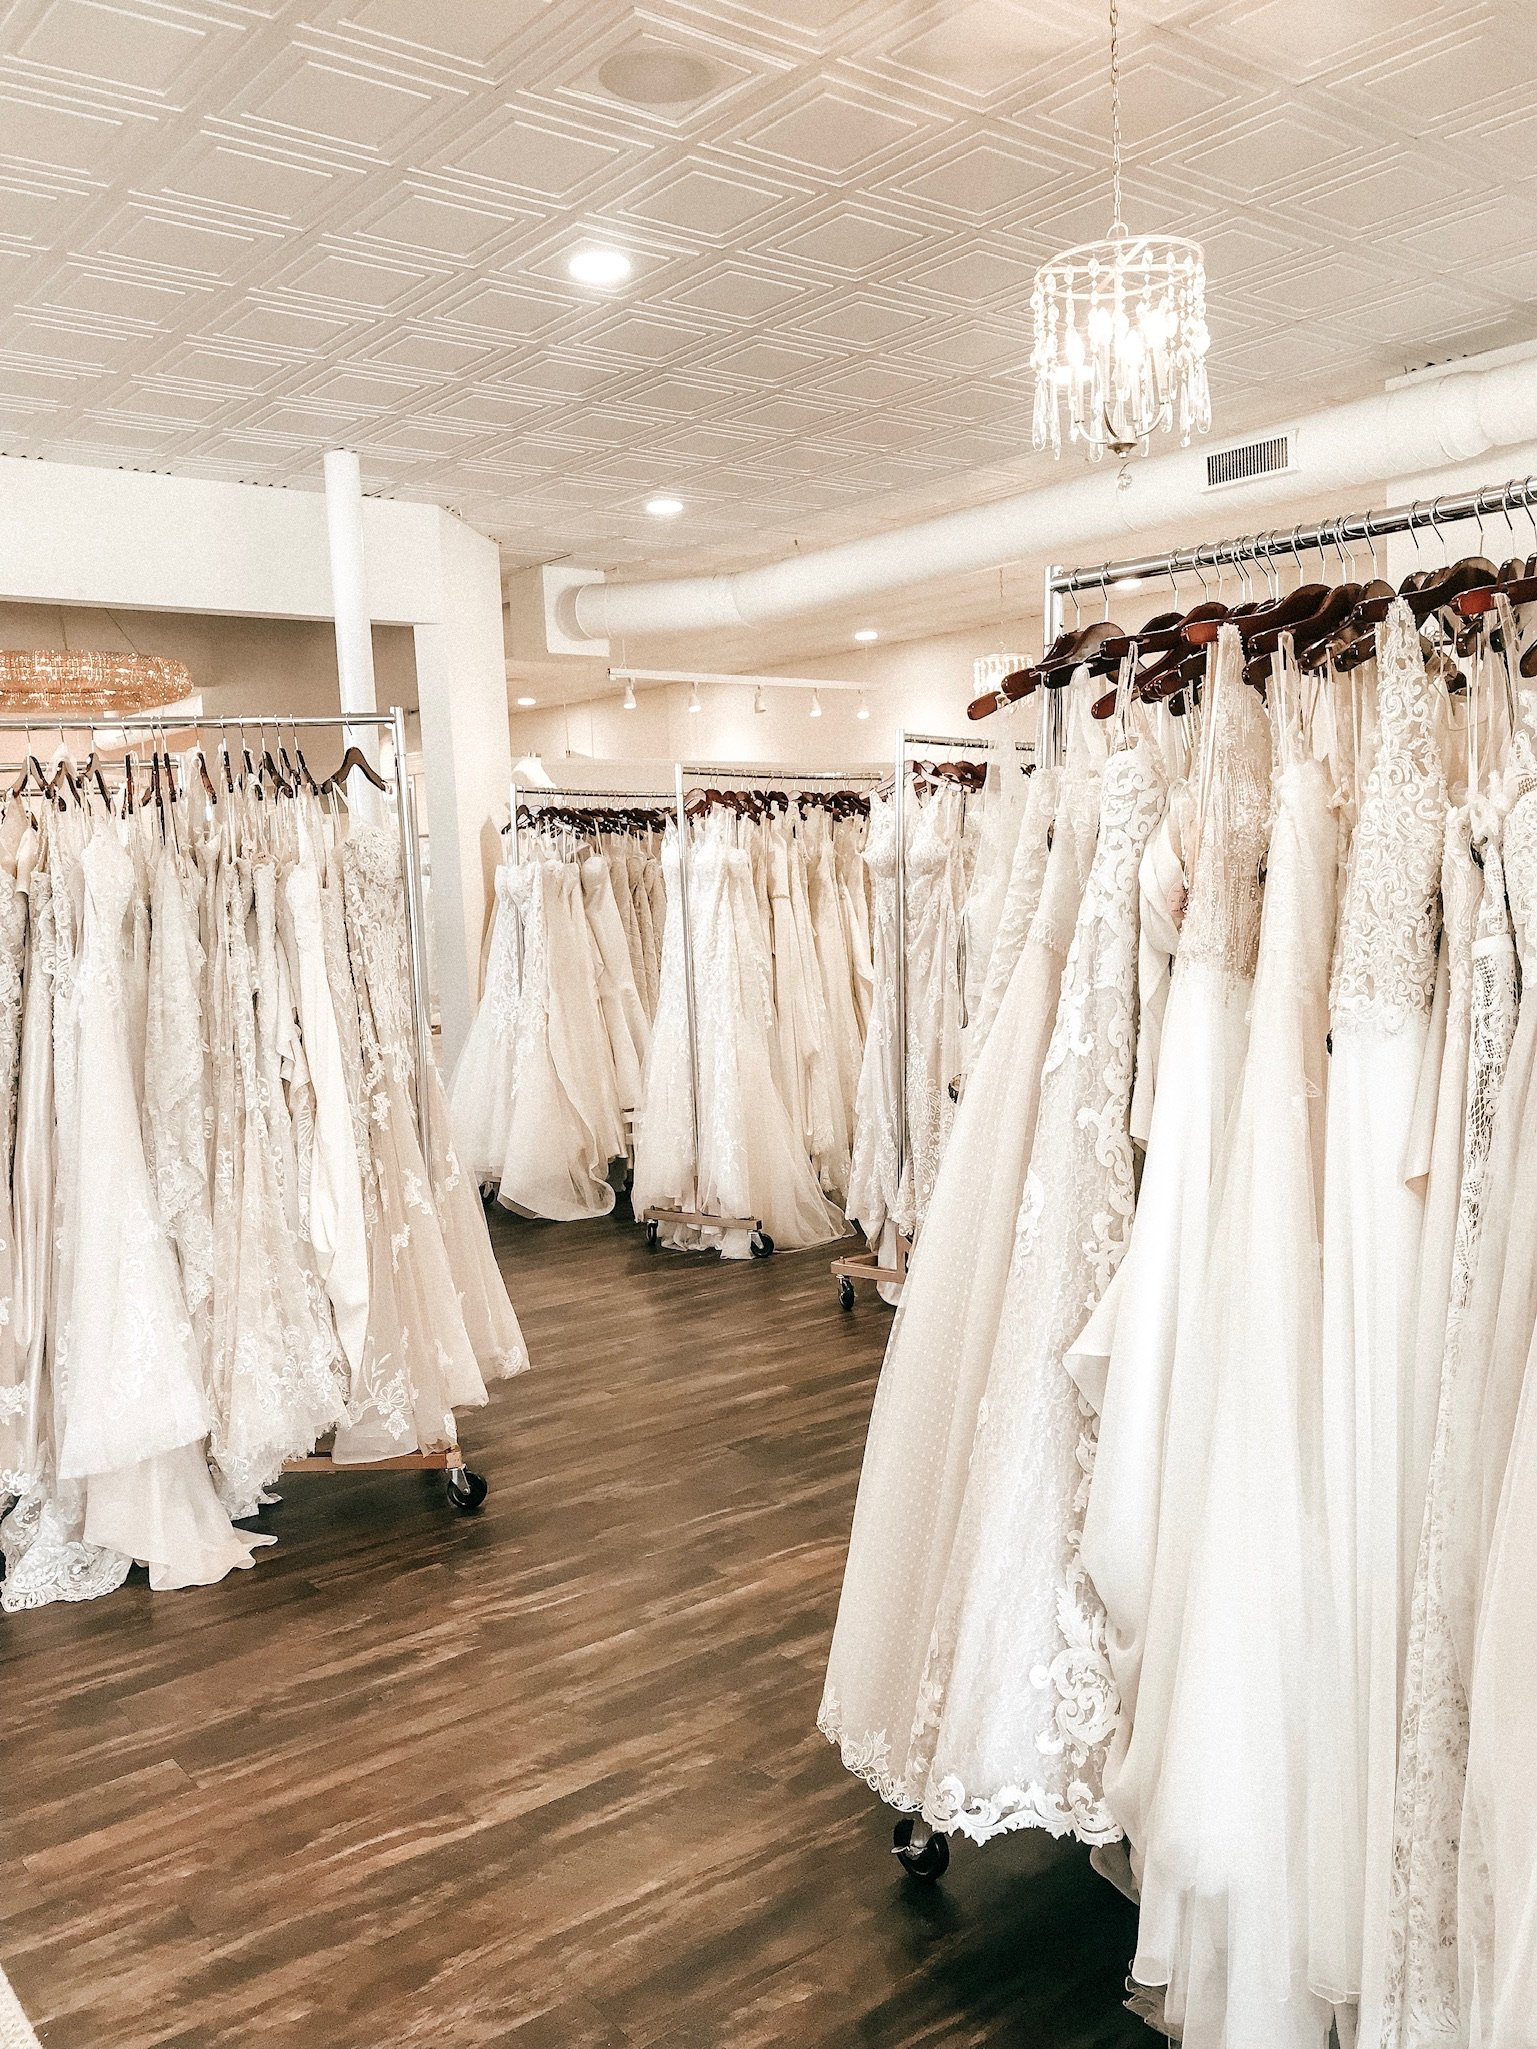 room full of wedding dresses ready for a sample sale at an Indianapolis bridal boutique